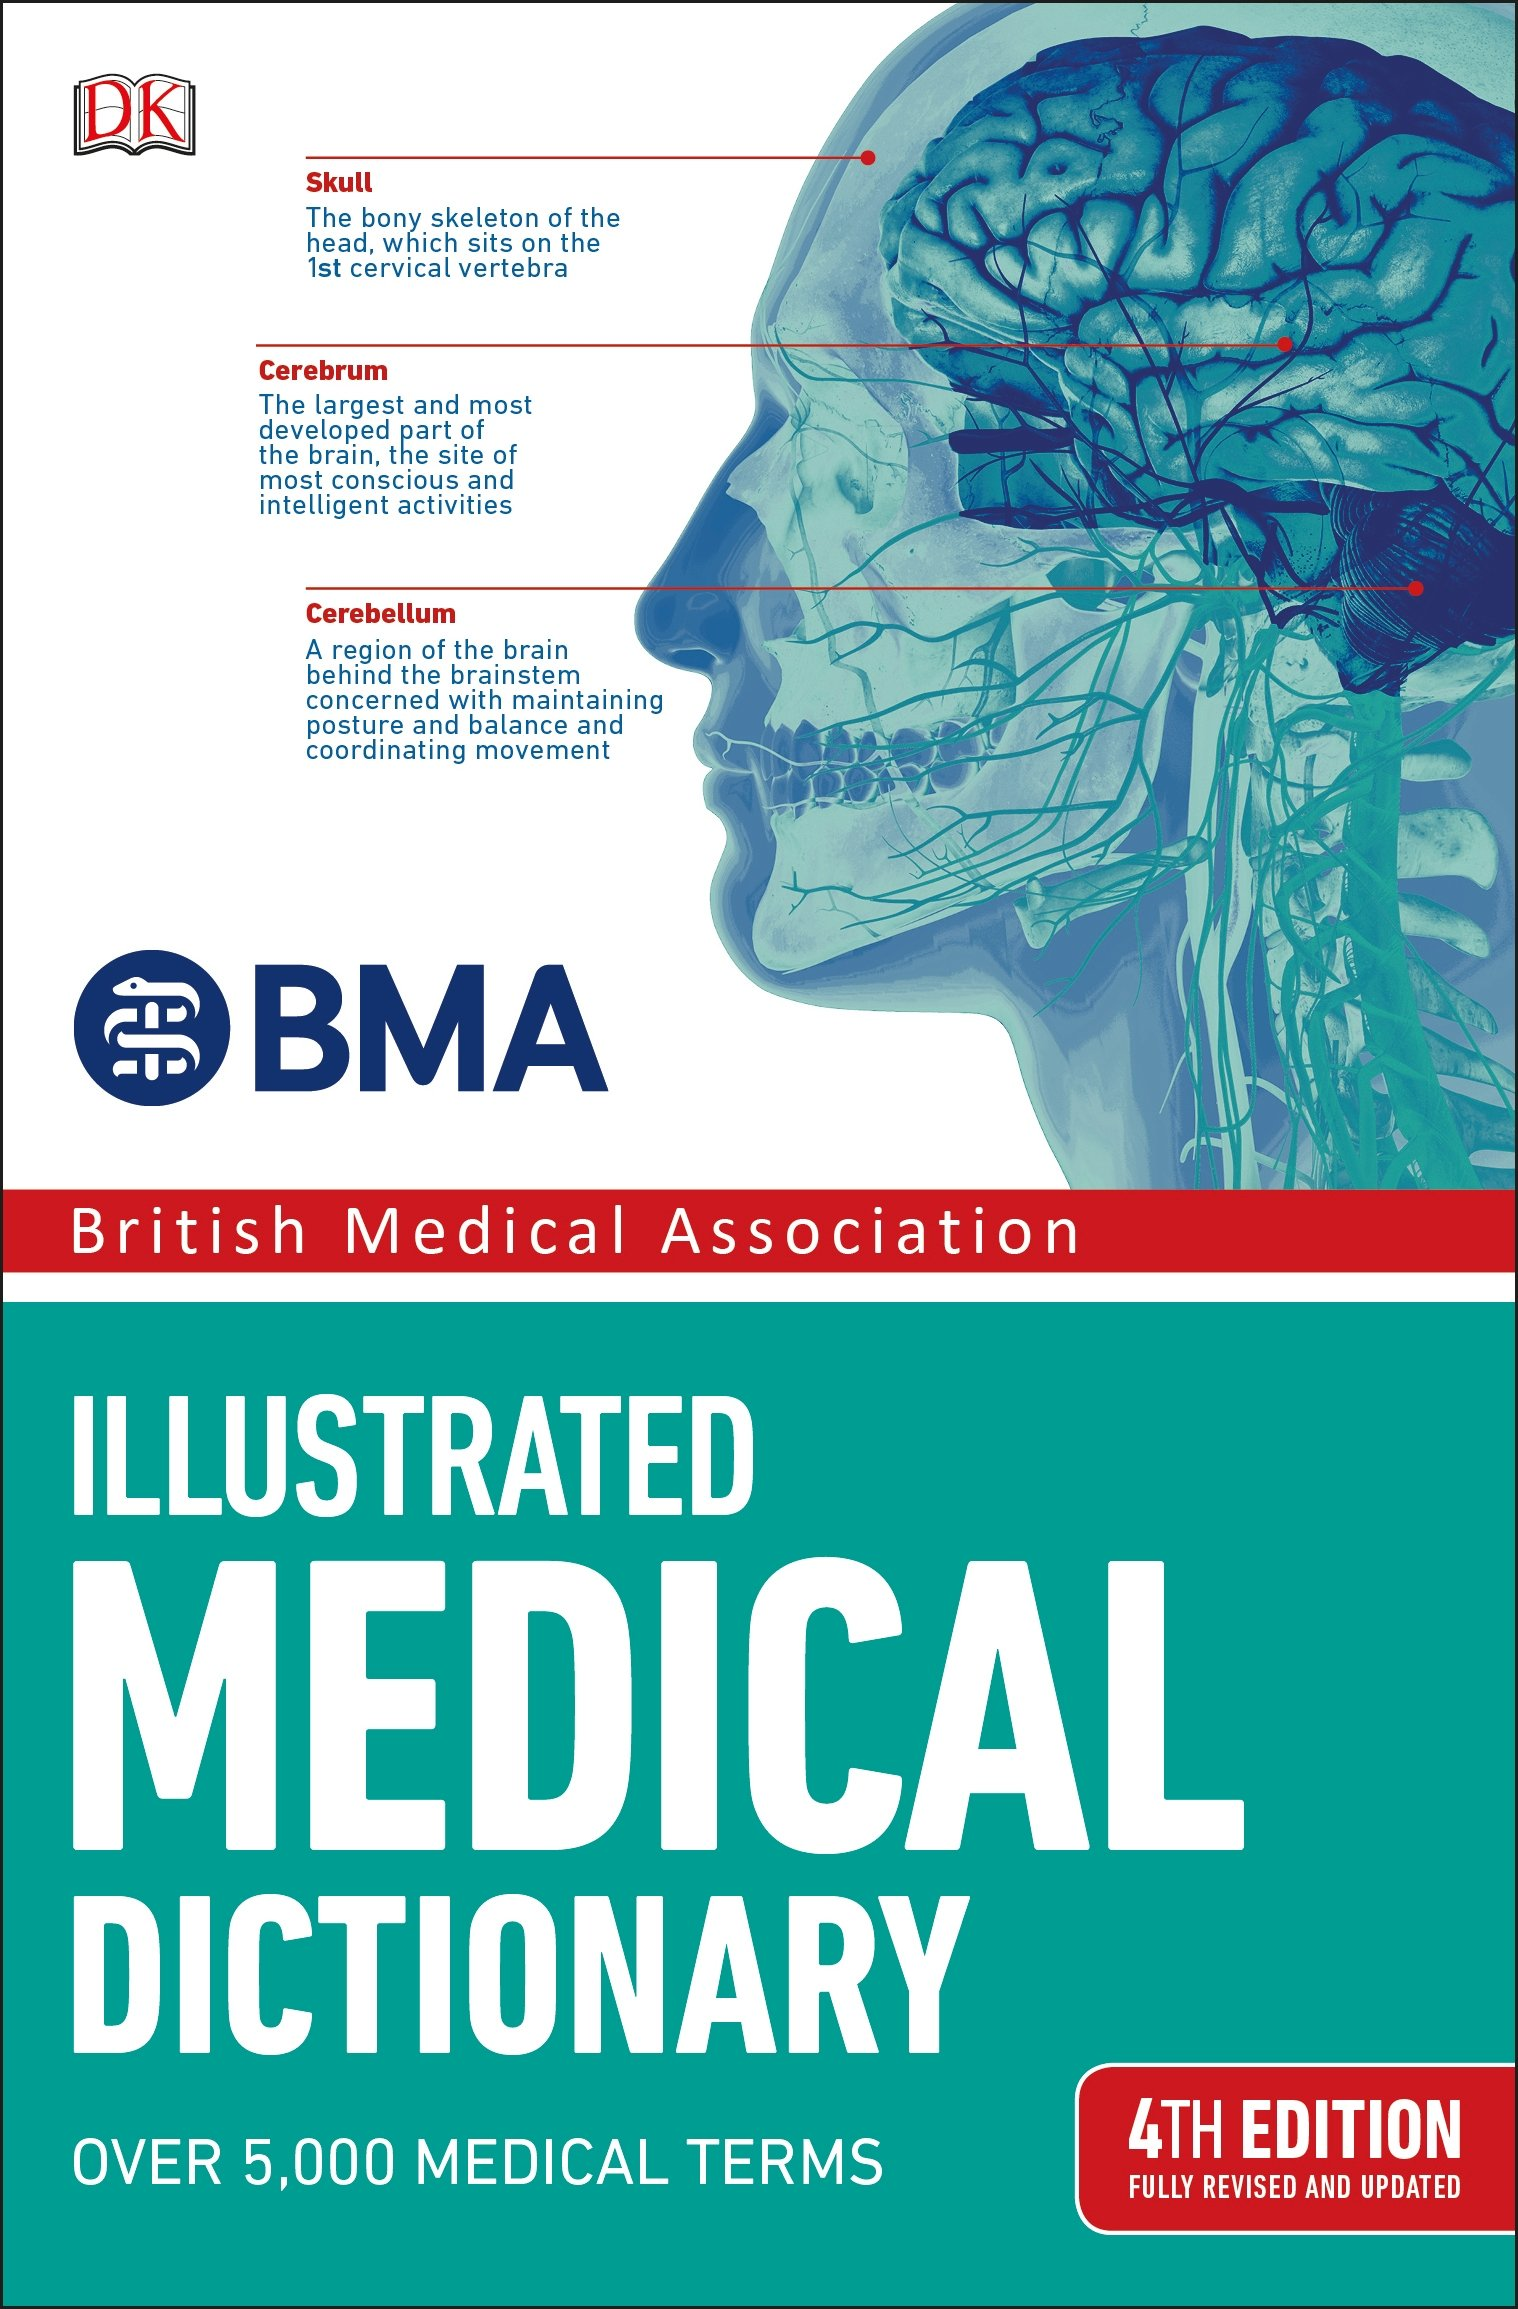 Registration key for oxford concise medical dictionary 6th edition internet